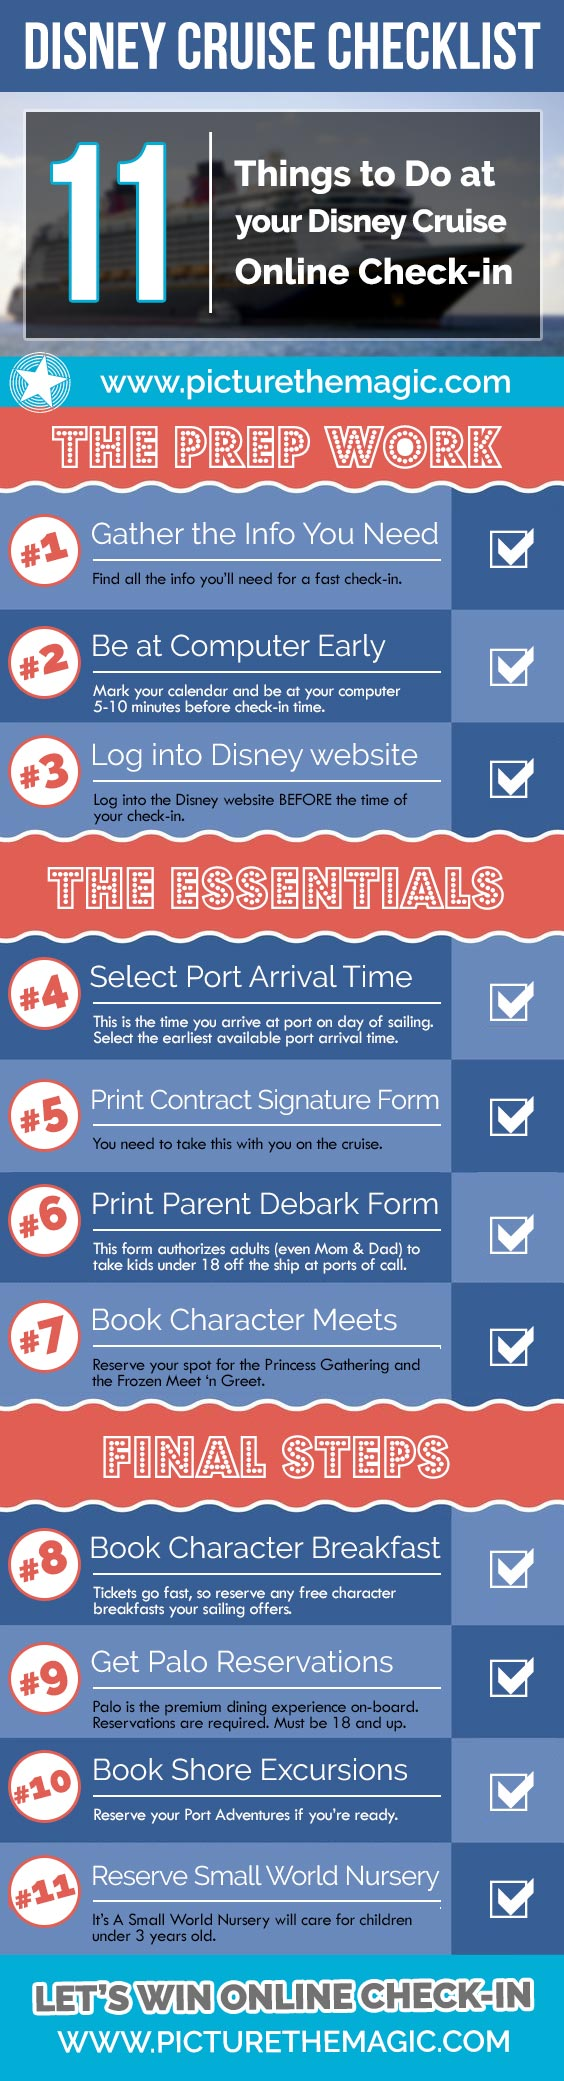 Disney Cruise Online Check-in Checklist Infographic